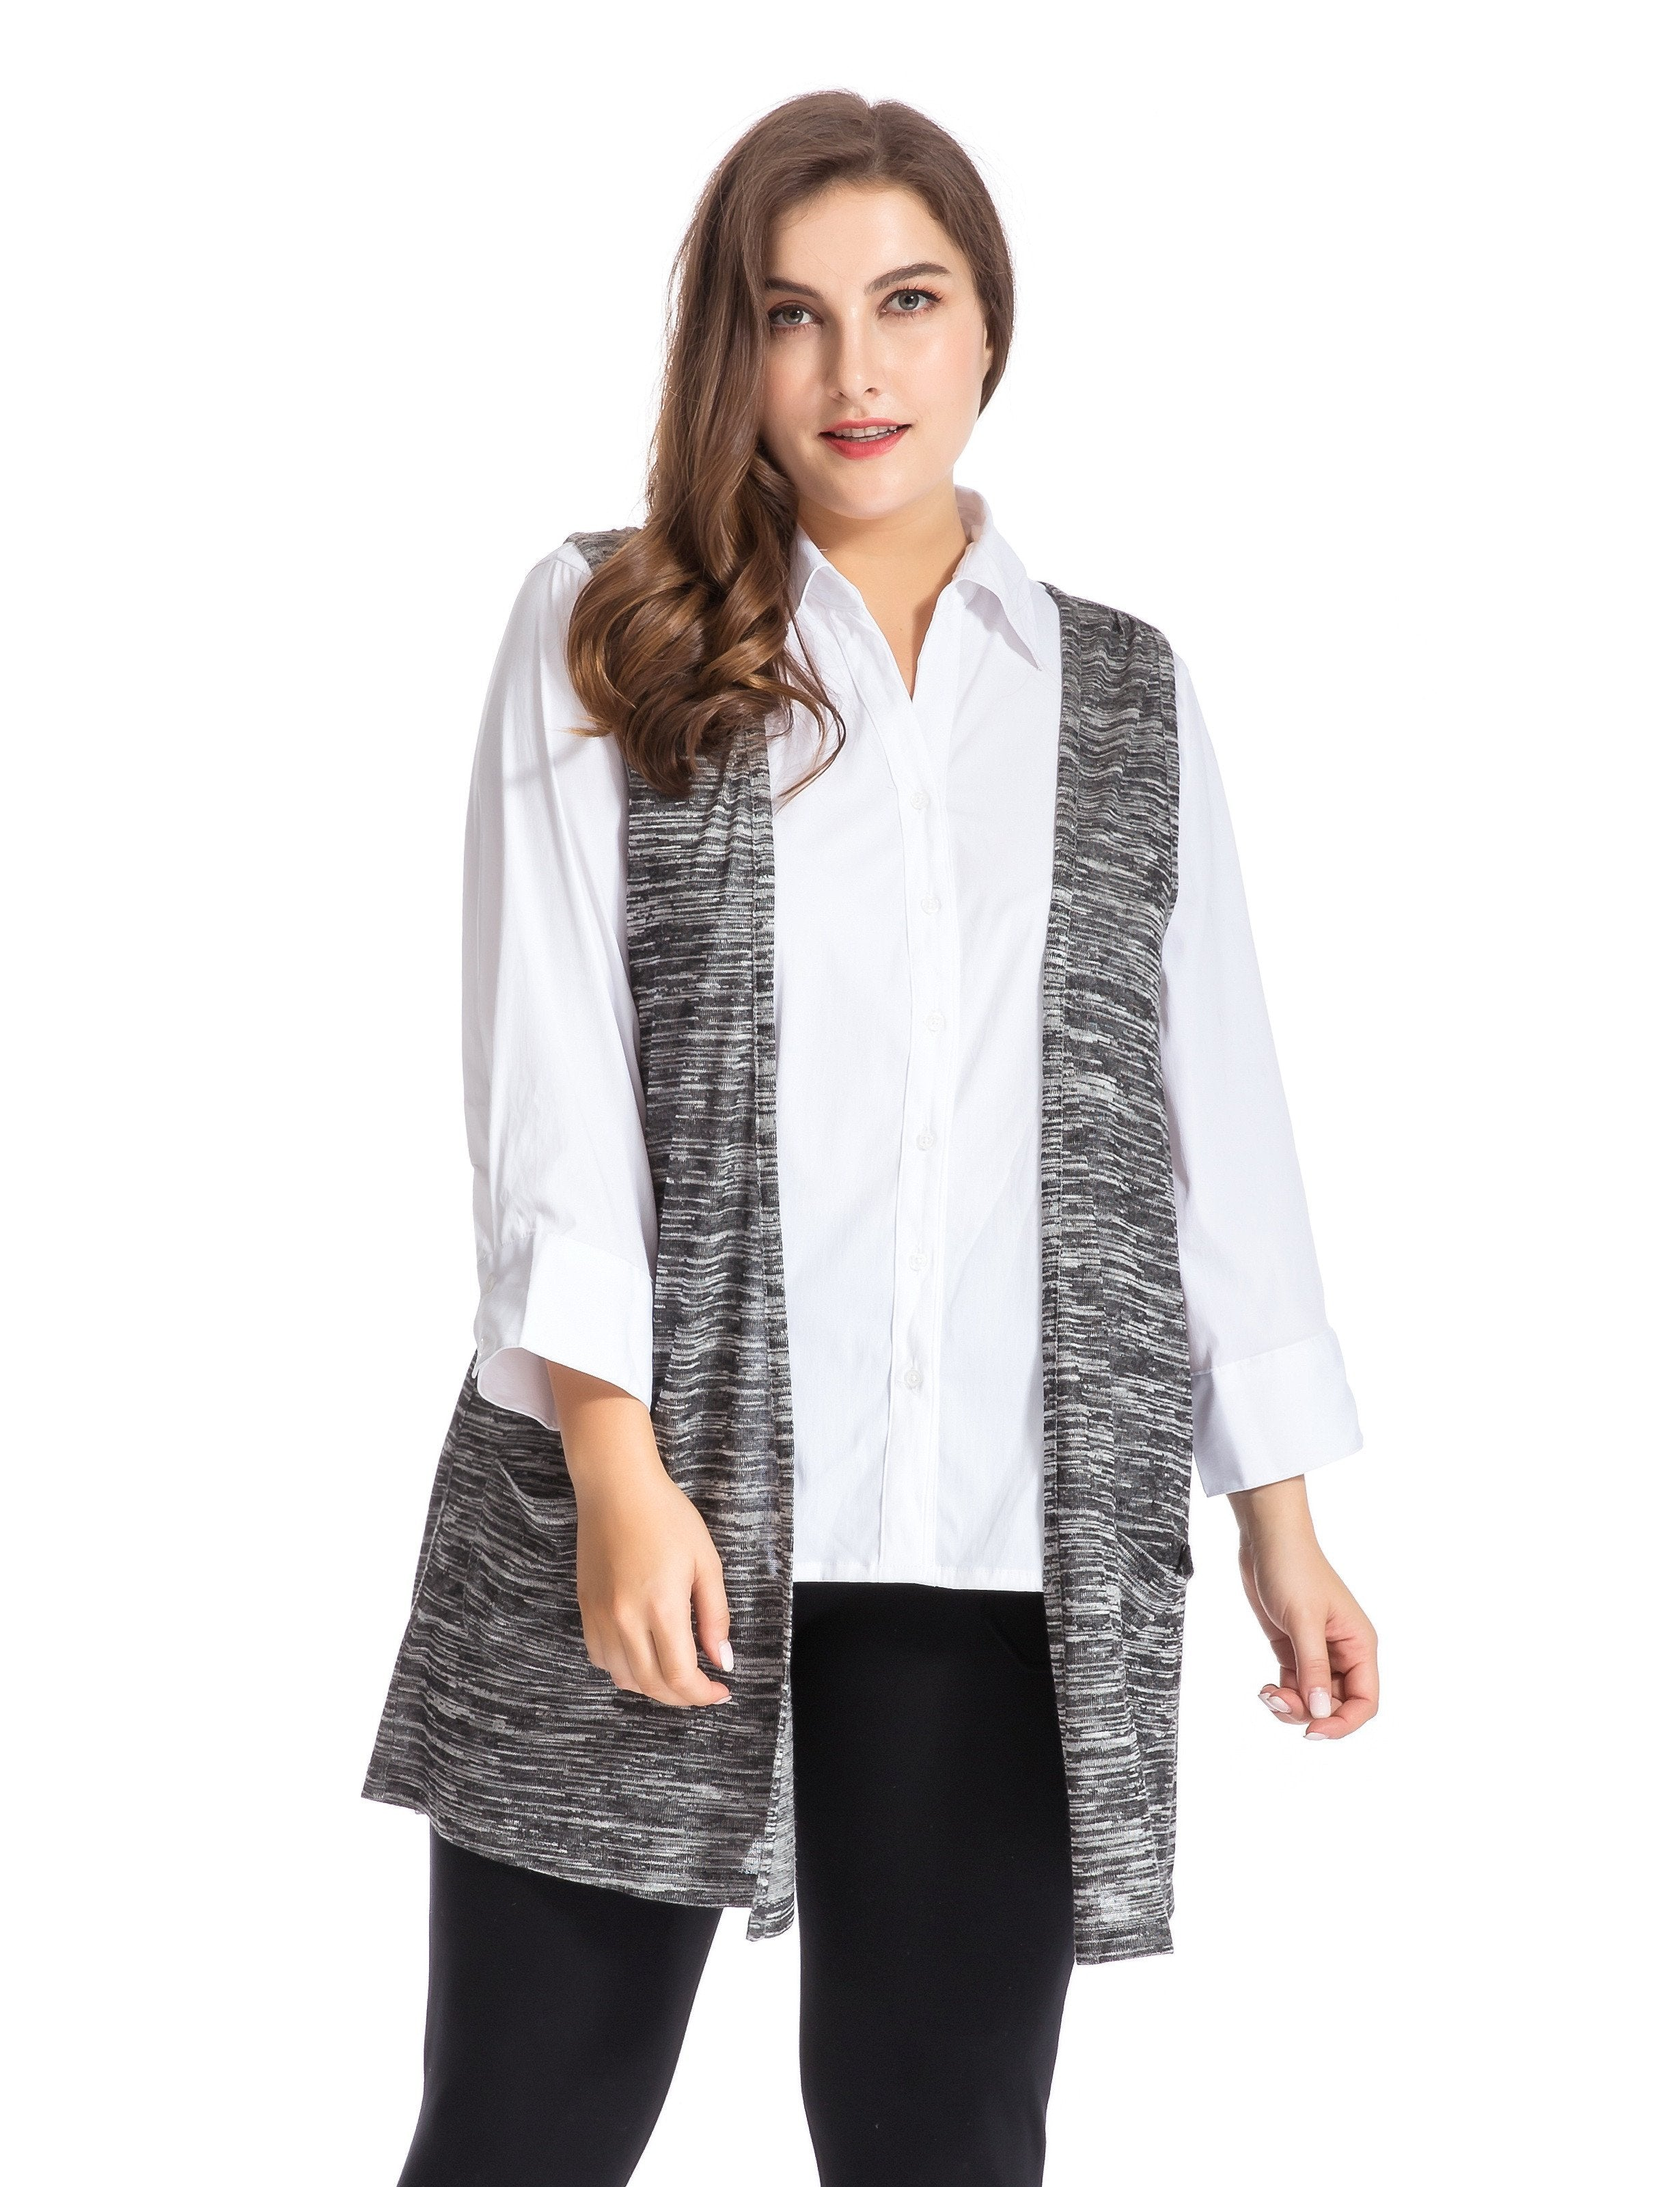 Chicwe Women's Plus Size Melange Knit Vest Cardigan Style with Pockets US16-26